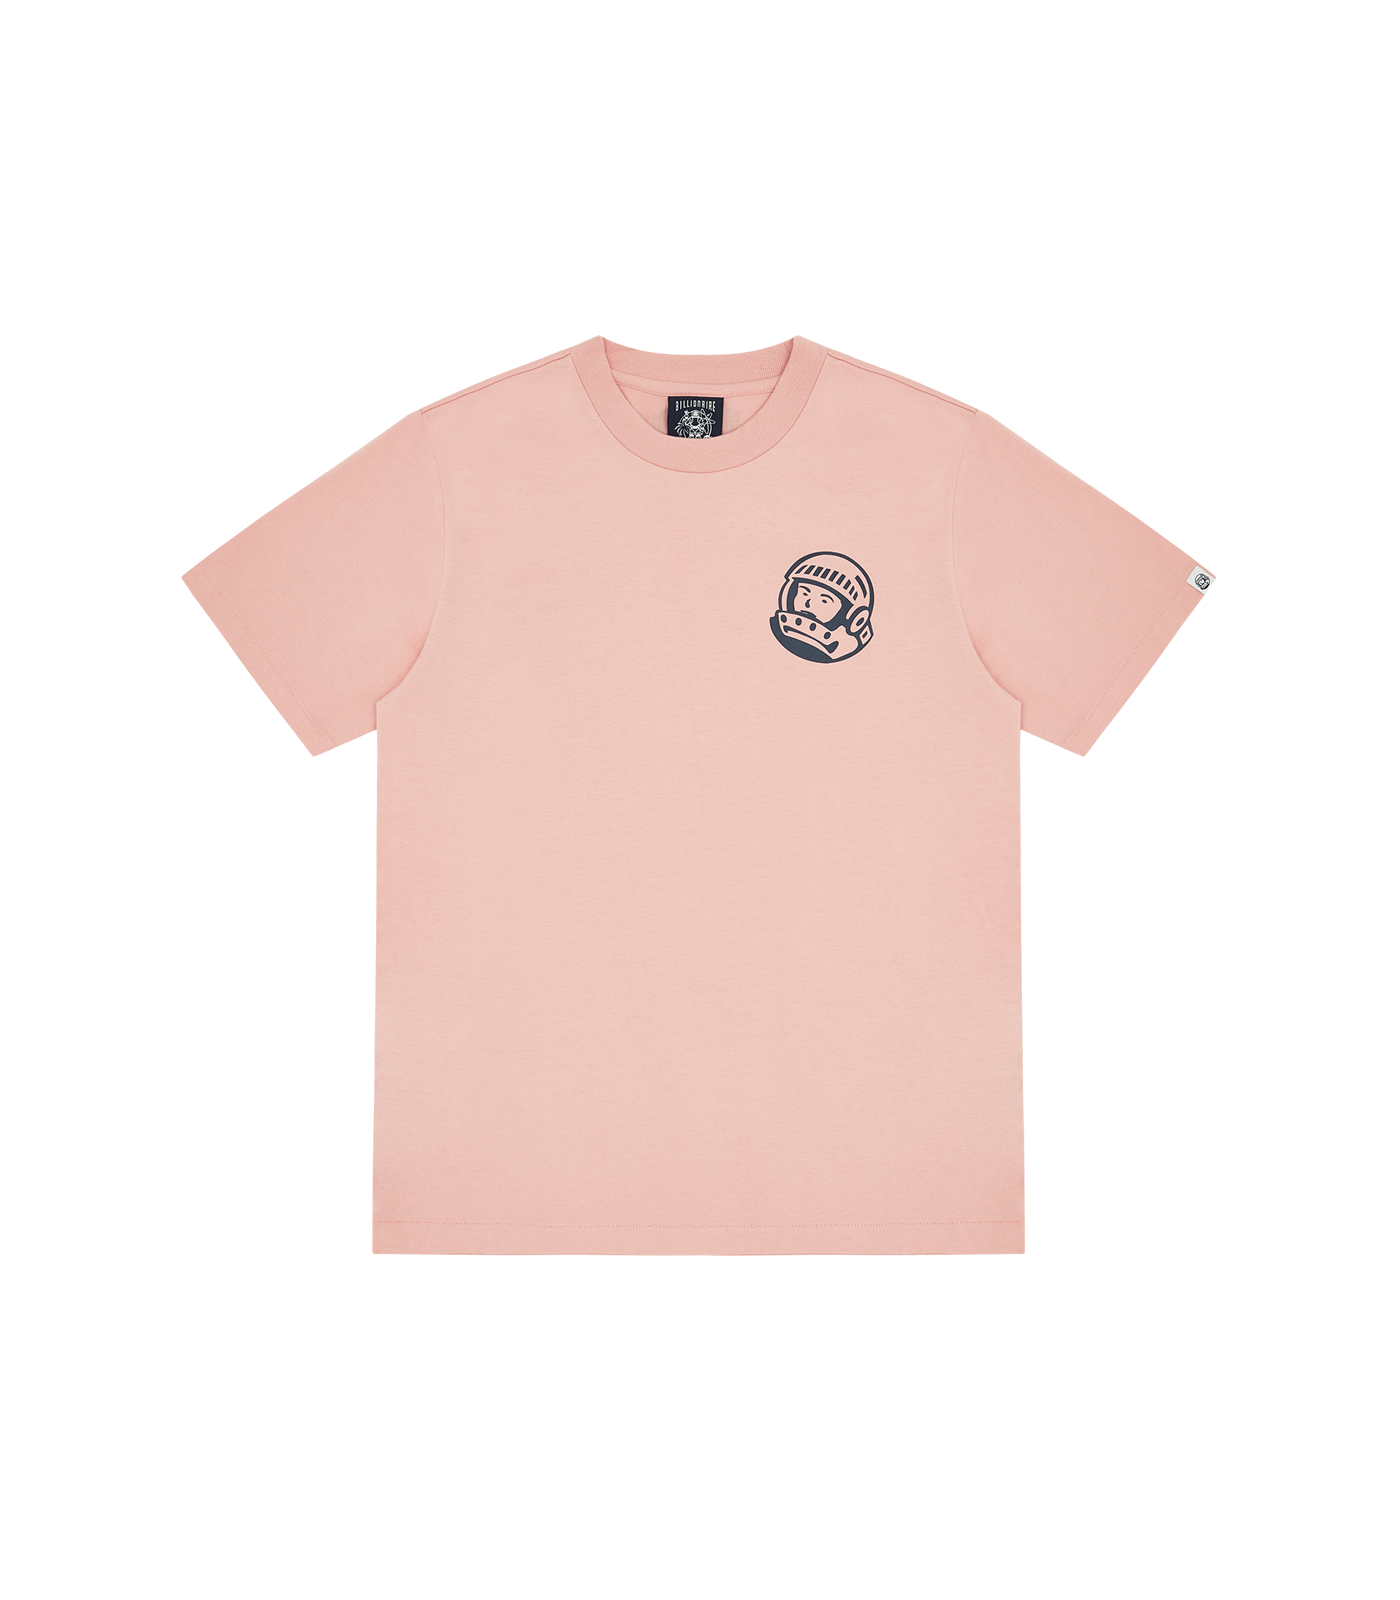 SMALL ASTRO HELMET LOGO T-SHIRT - CORAL